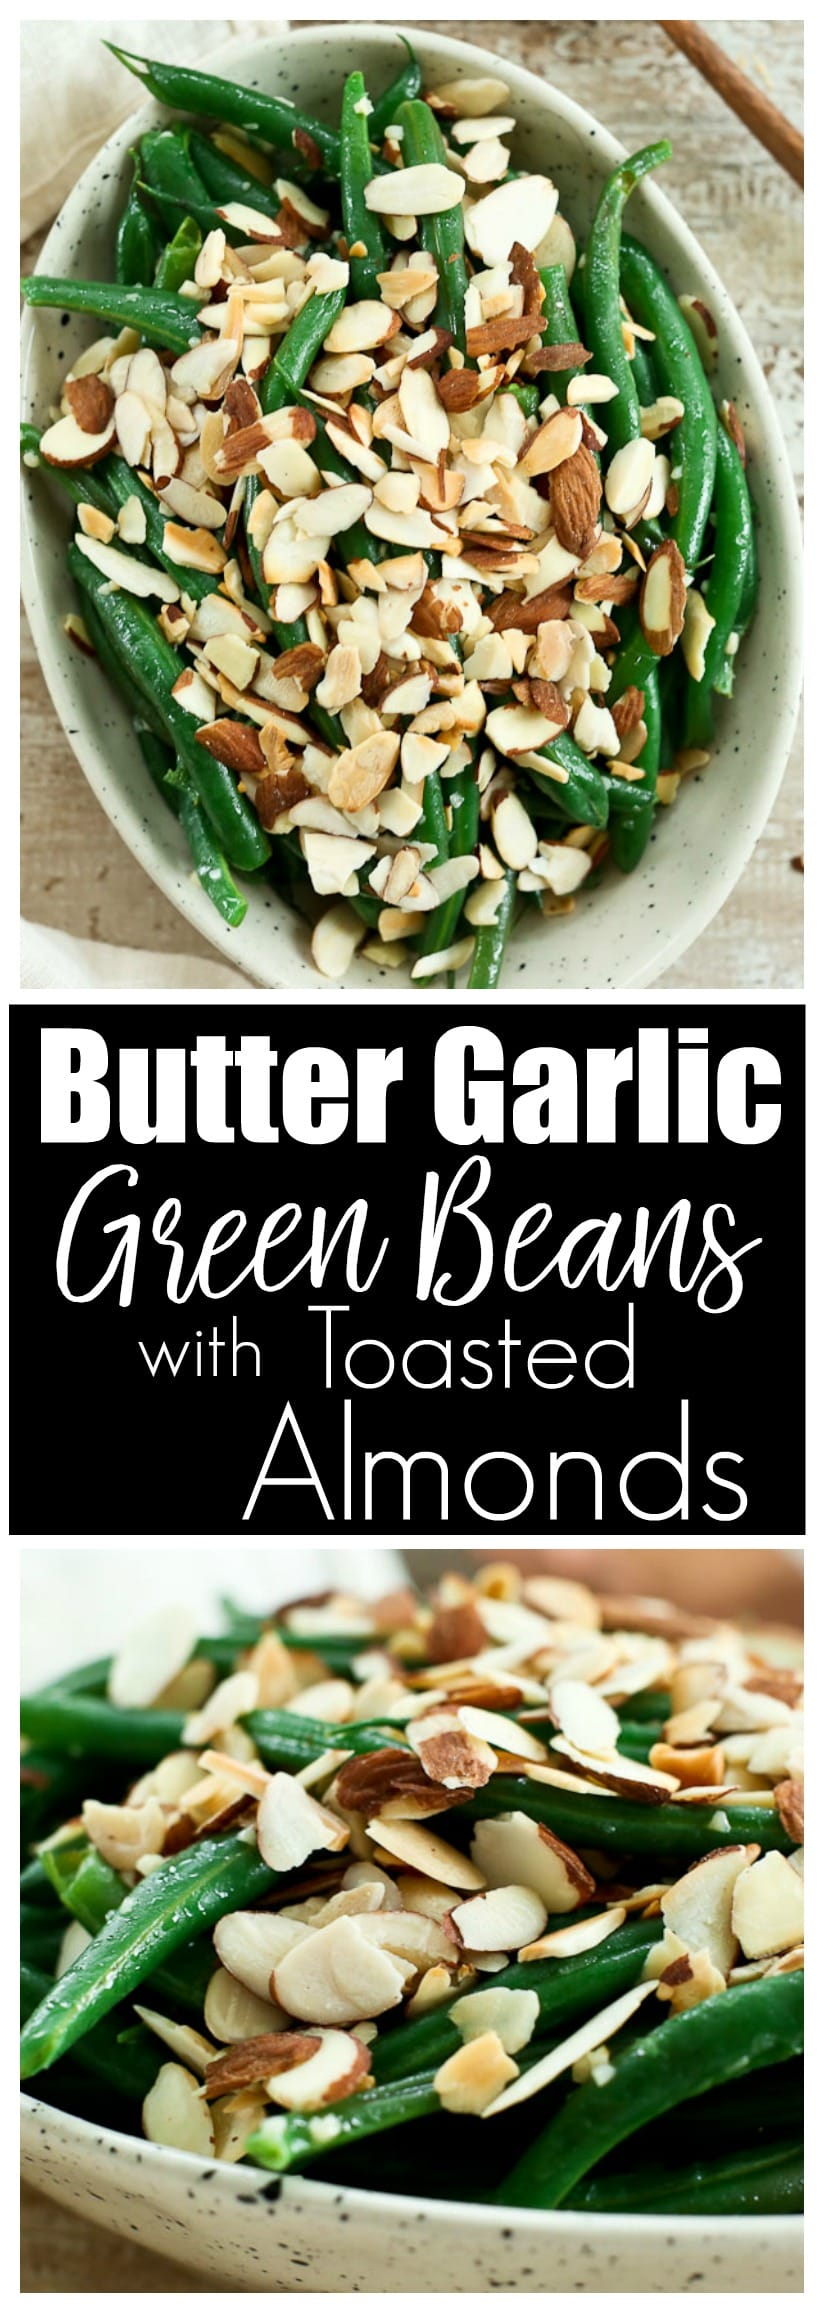 Garlic Butter Green Beans with Toasted Almonds recipe #thanksgivingrecipes #greenbeans #glutenfree #healthy #sidedish